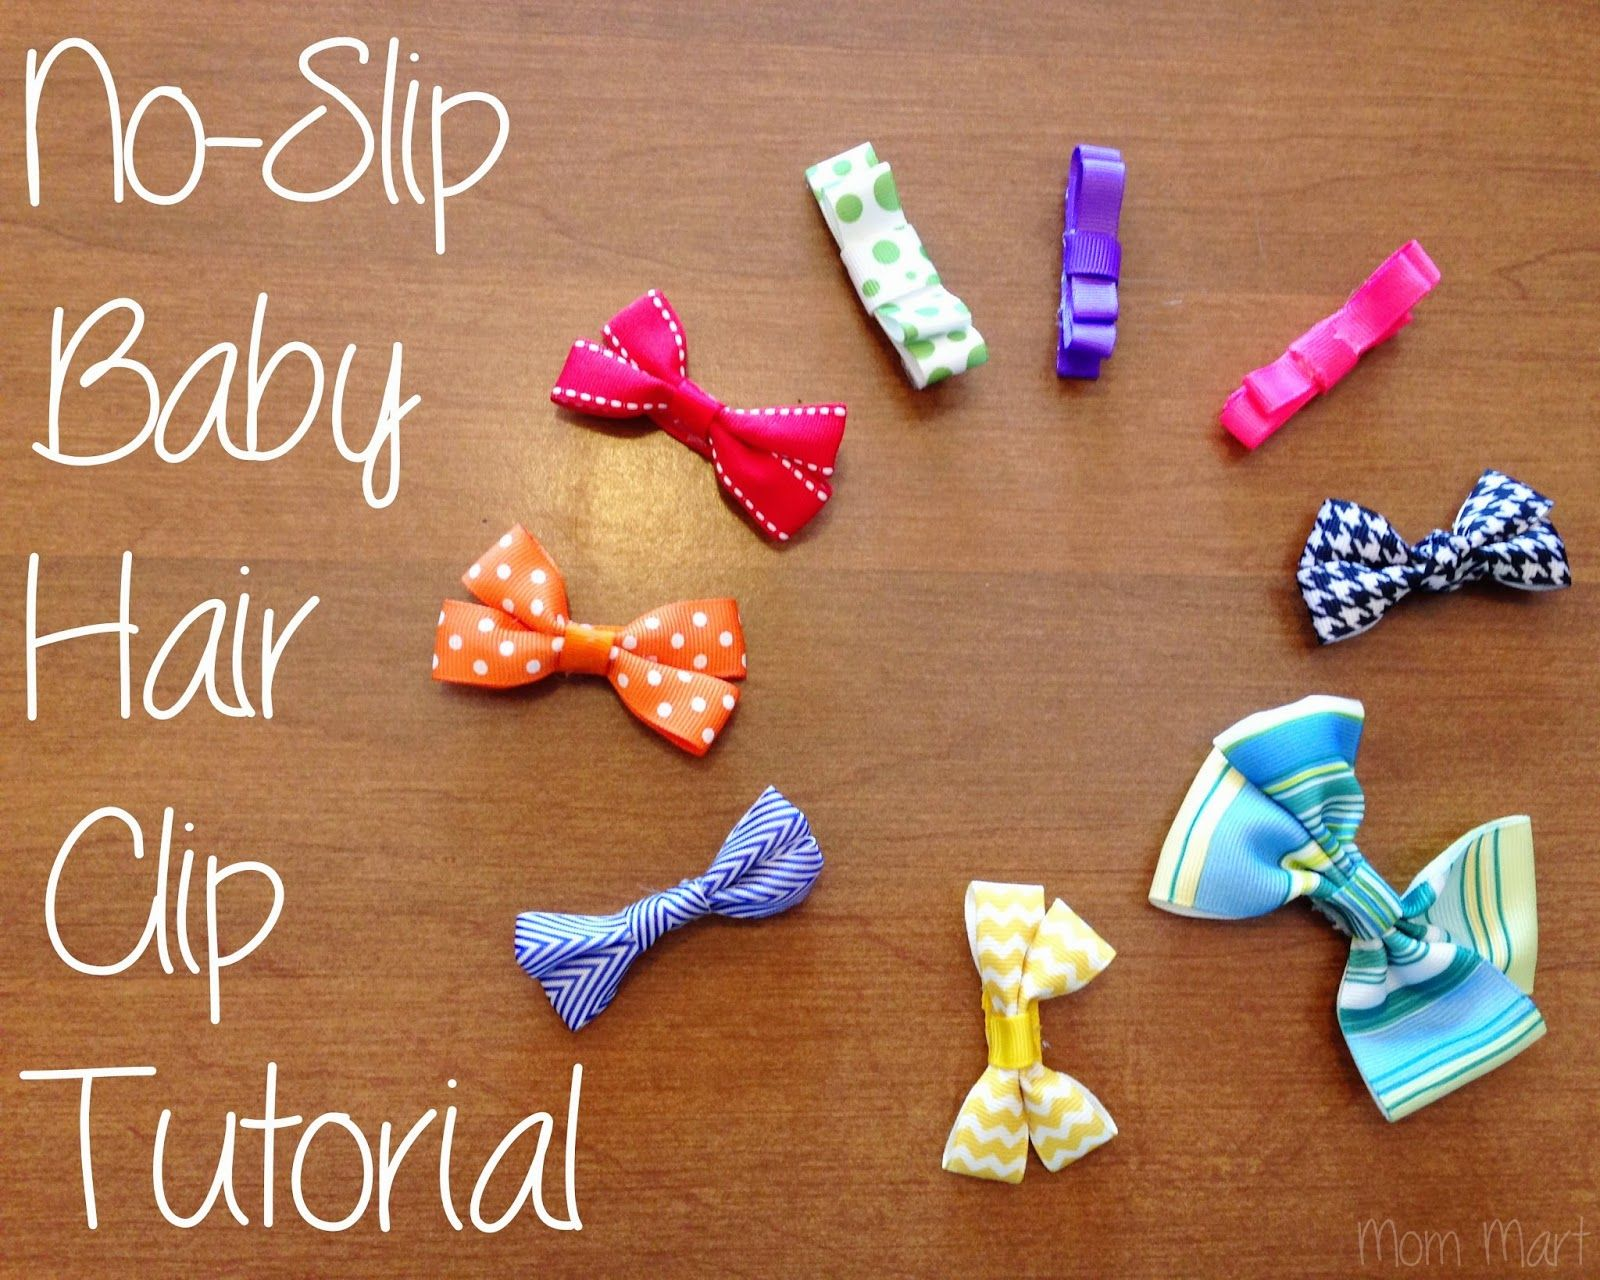 DIY baby hair clips with a no-slip grip, #DIY #Tutorial #Homemade #HairBow #babyhairaccessories